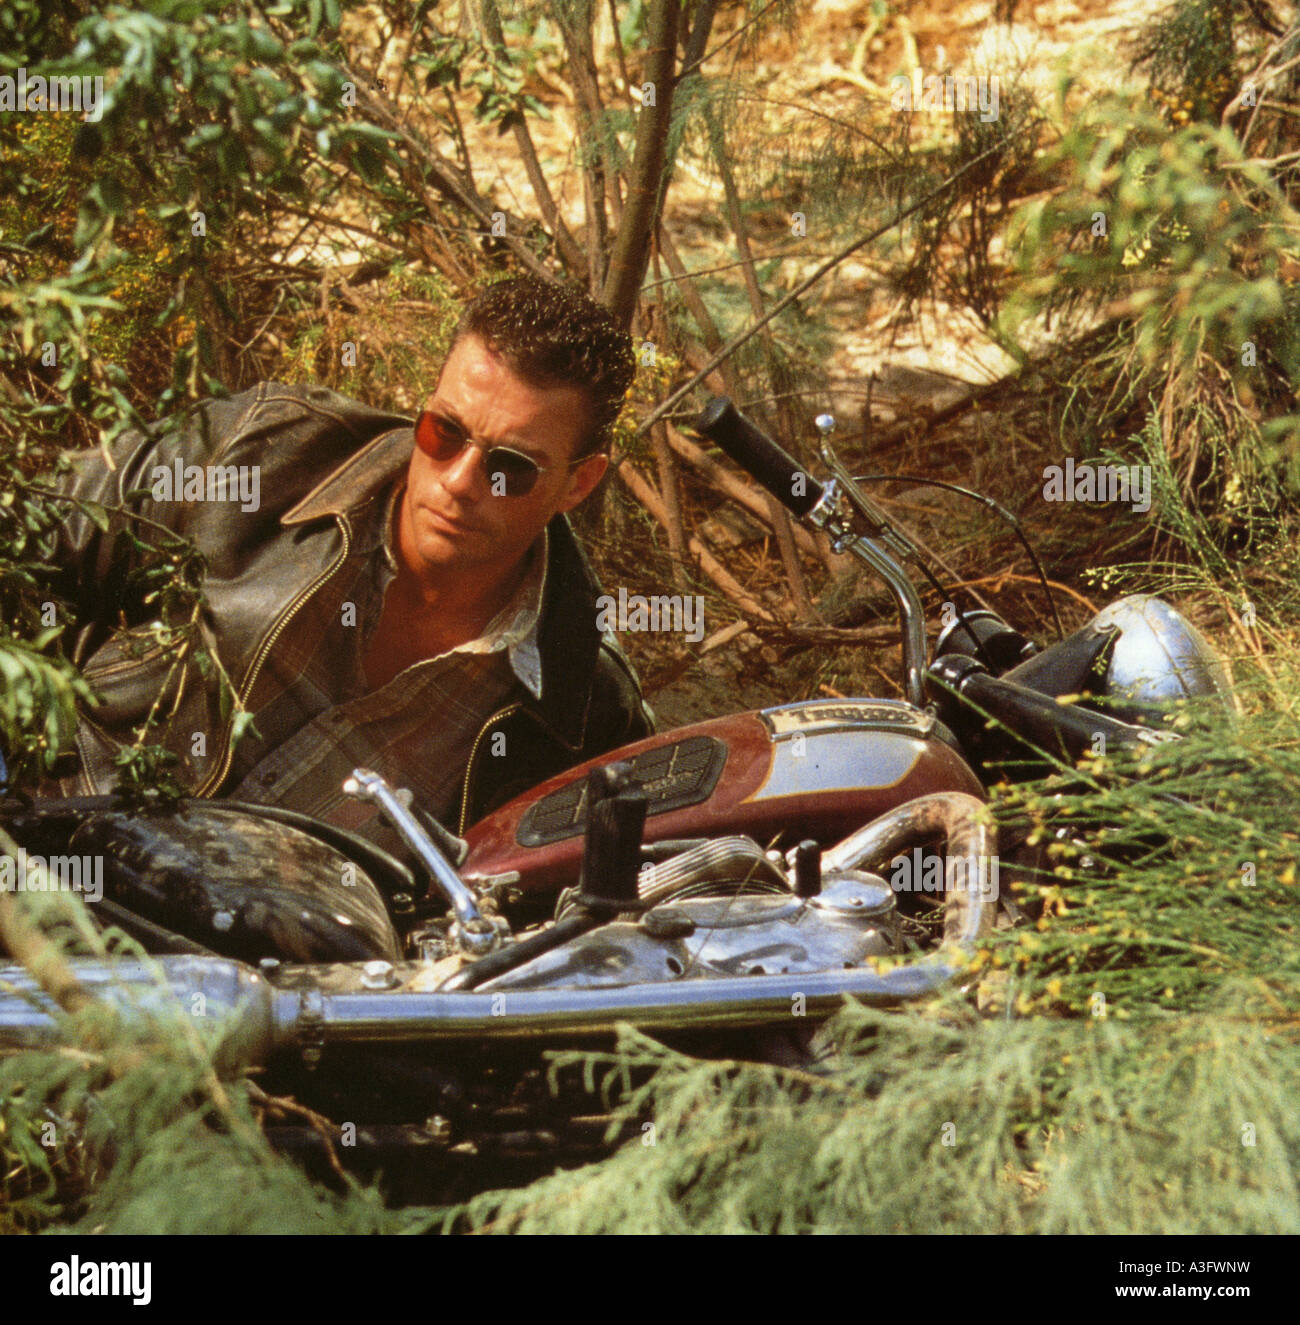 NOWHERE TO RUN 1993 Columbia film with Jean Claude Van Damme - Stock Image